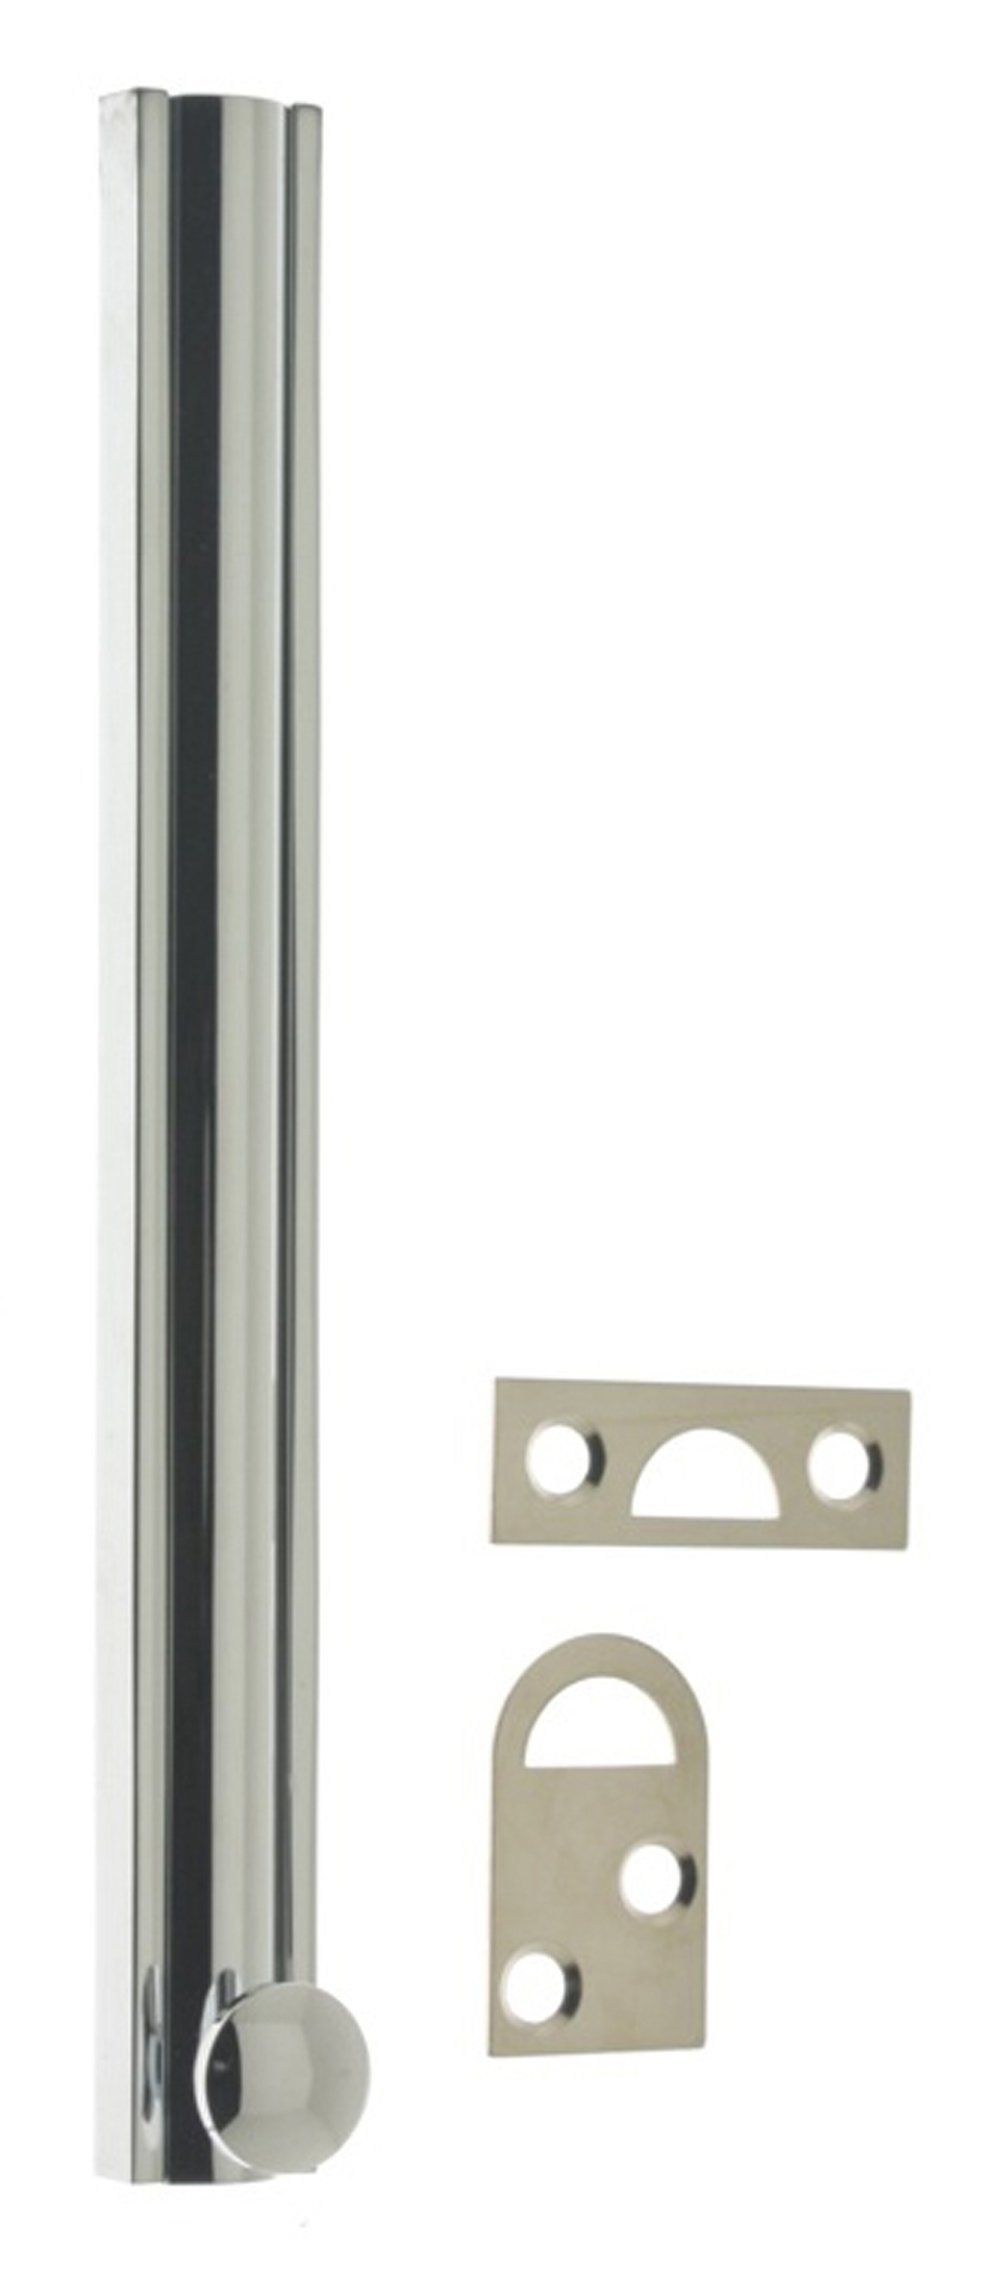 idh by St. Simons 11046-026 Professional Grade Quality Solid Brass 6'' Surface Bolt, 6-Inch, Polished Chrome